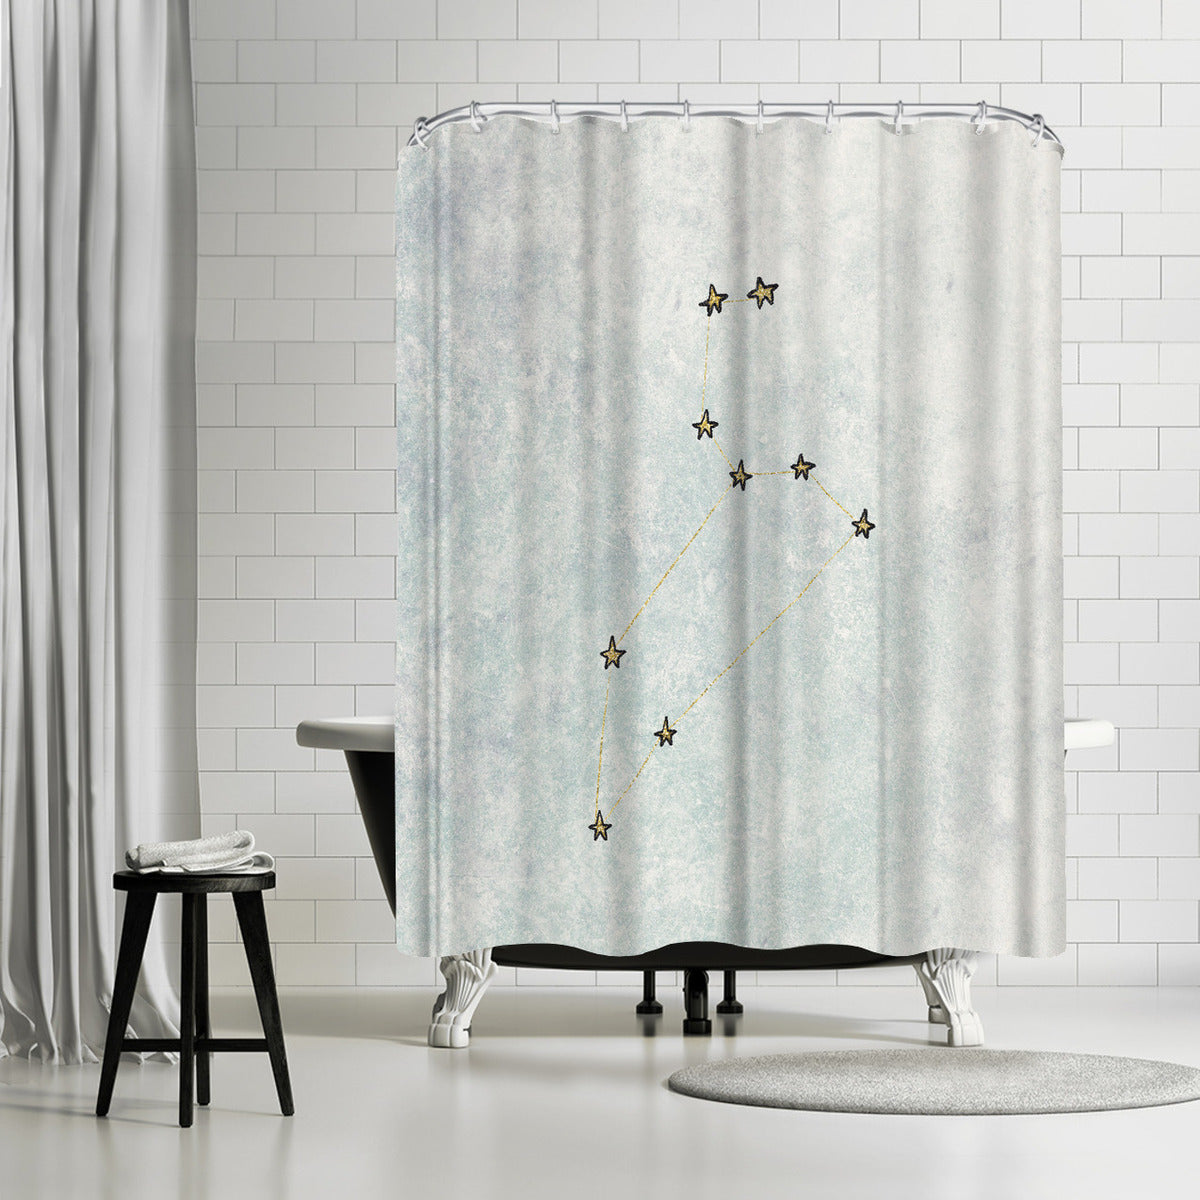 Leo by Leah Flores Shower Curtain - Shower Curtain - Americanflat